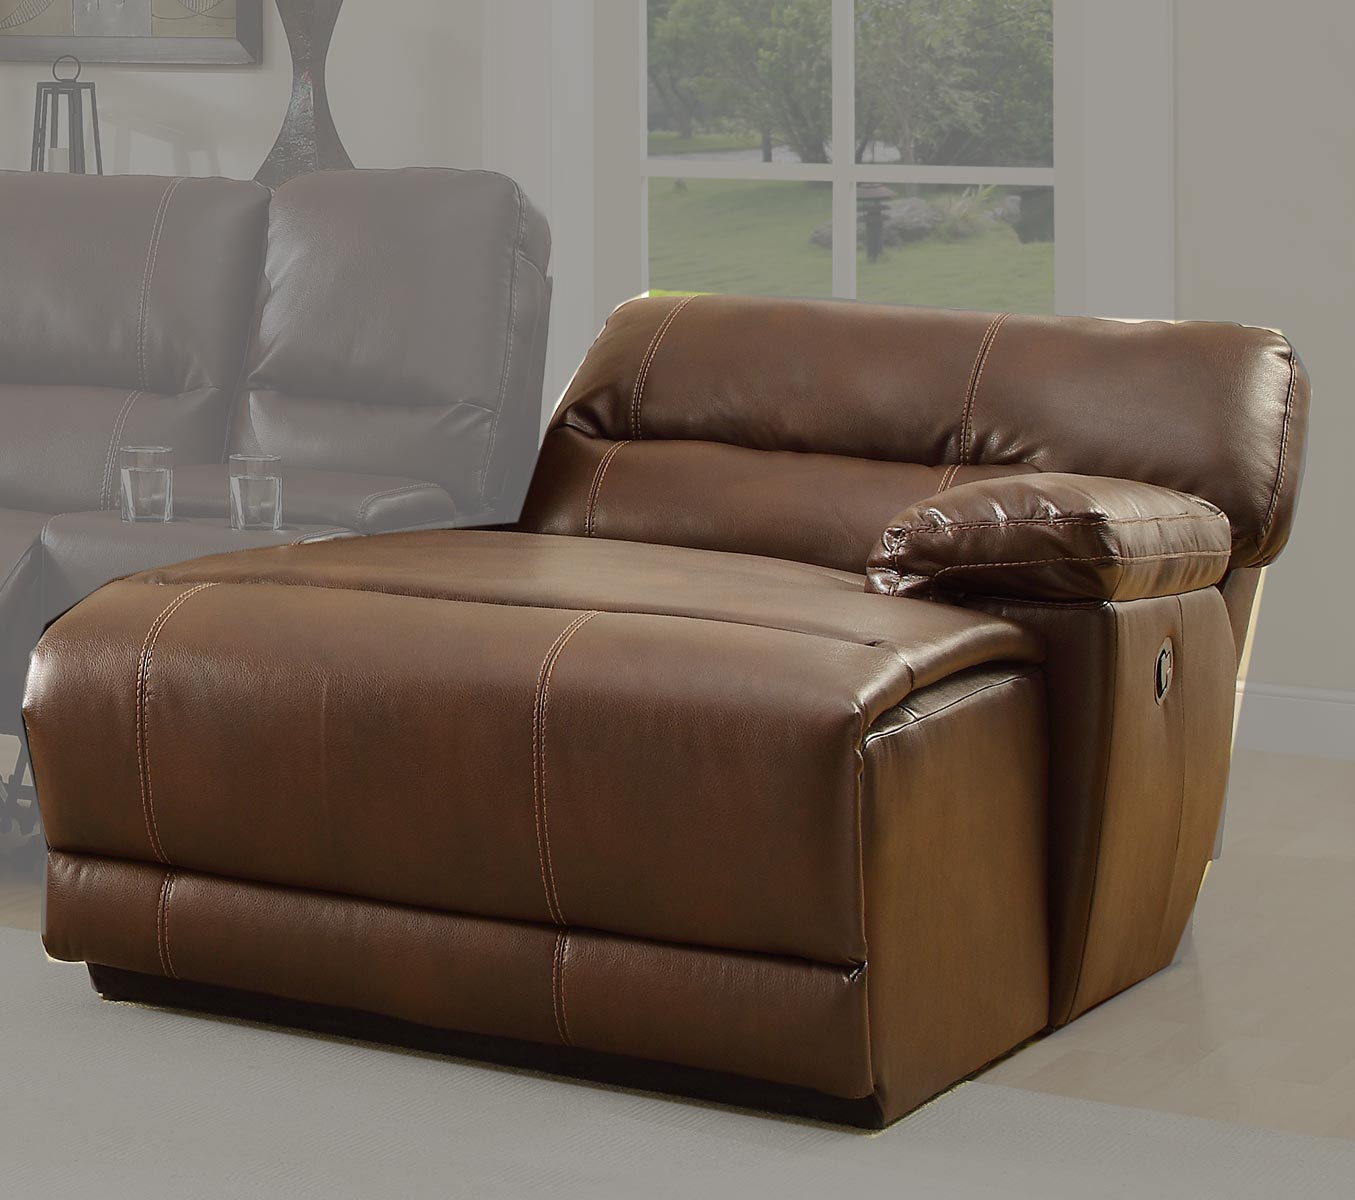 Homelegance blythe rsf back recliner chaise brown for Bonded leather chaise